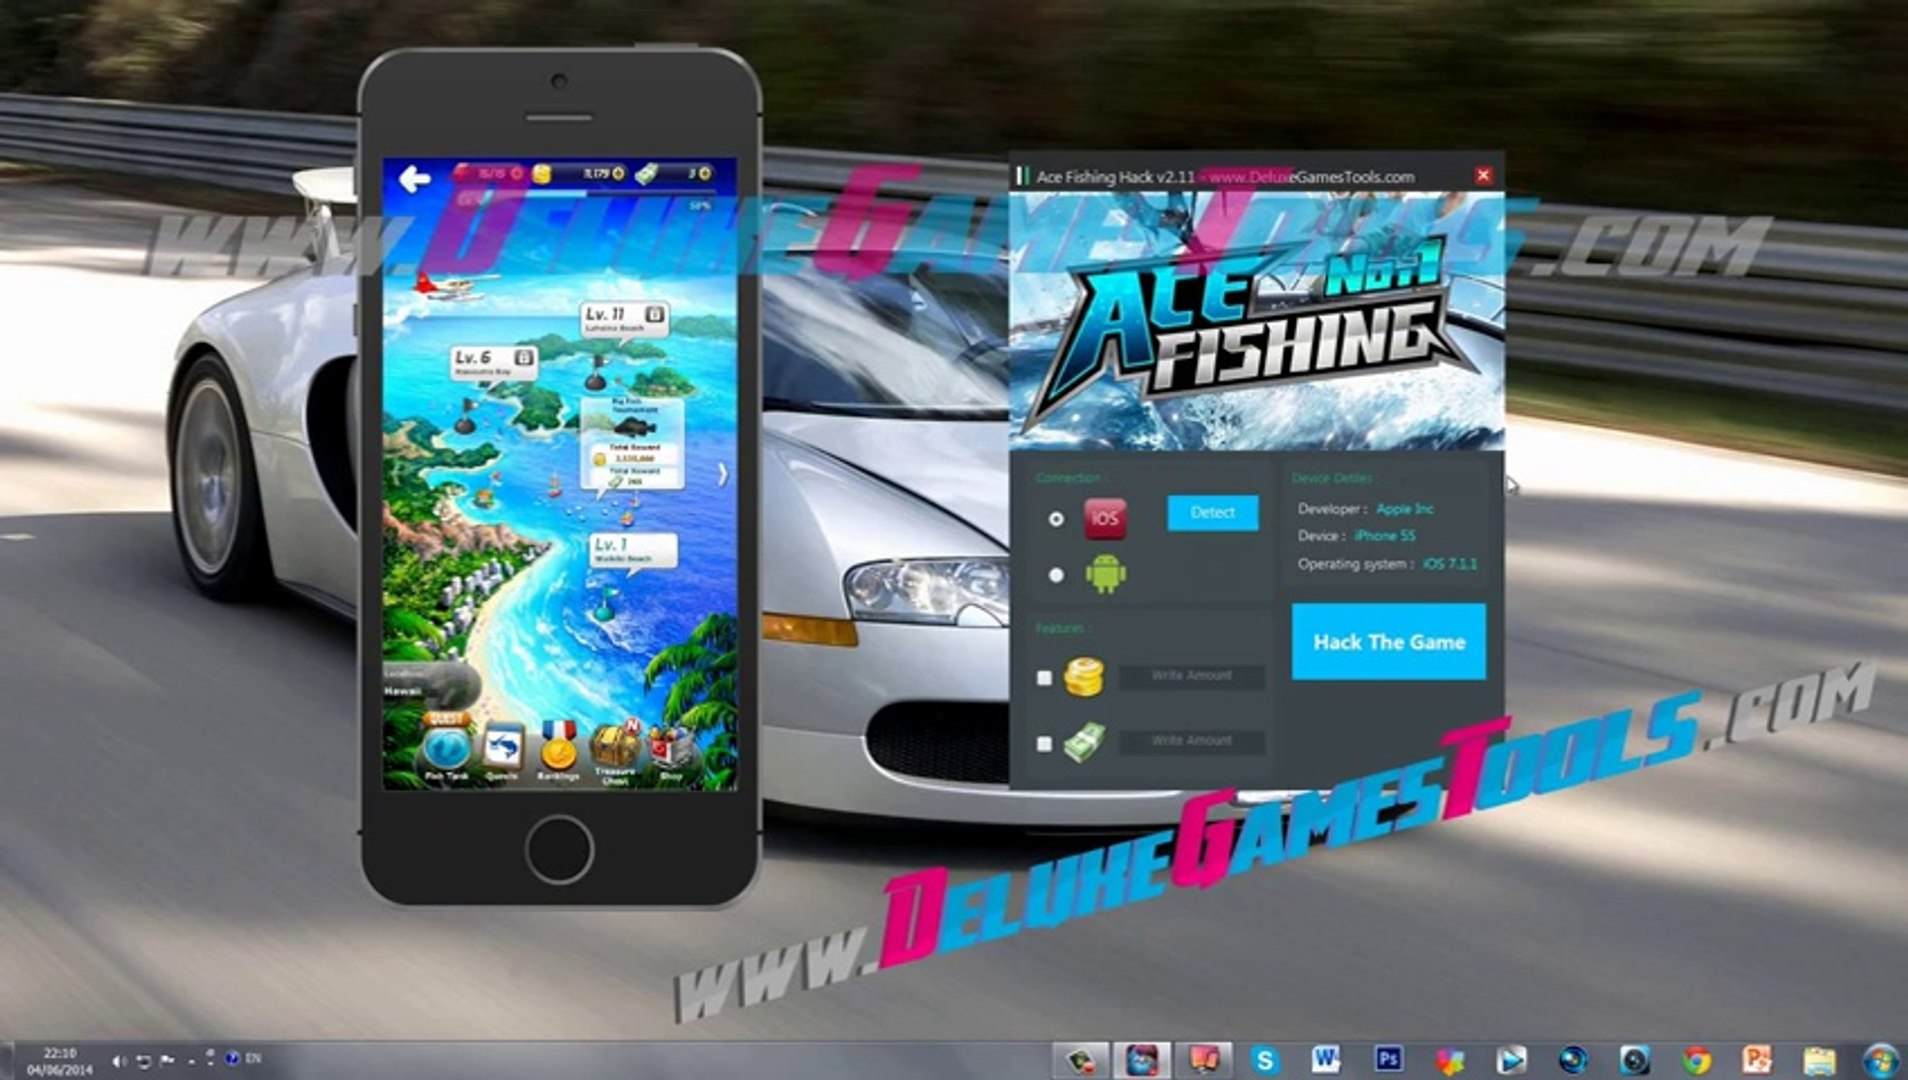 Ace Fishing Hack get unlimited gold and cash with the Ace Fishing Hack